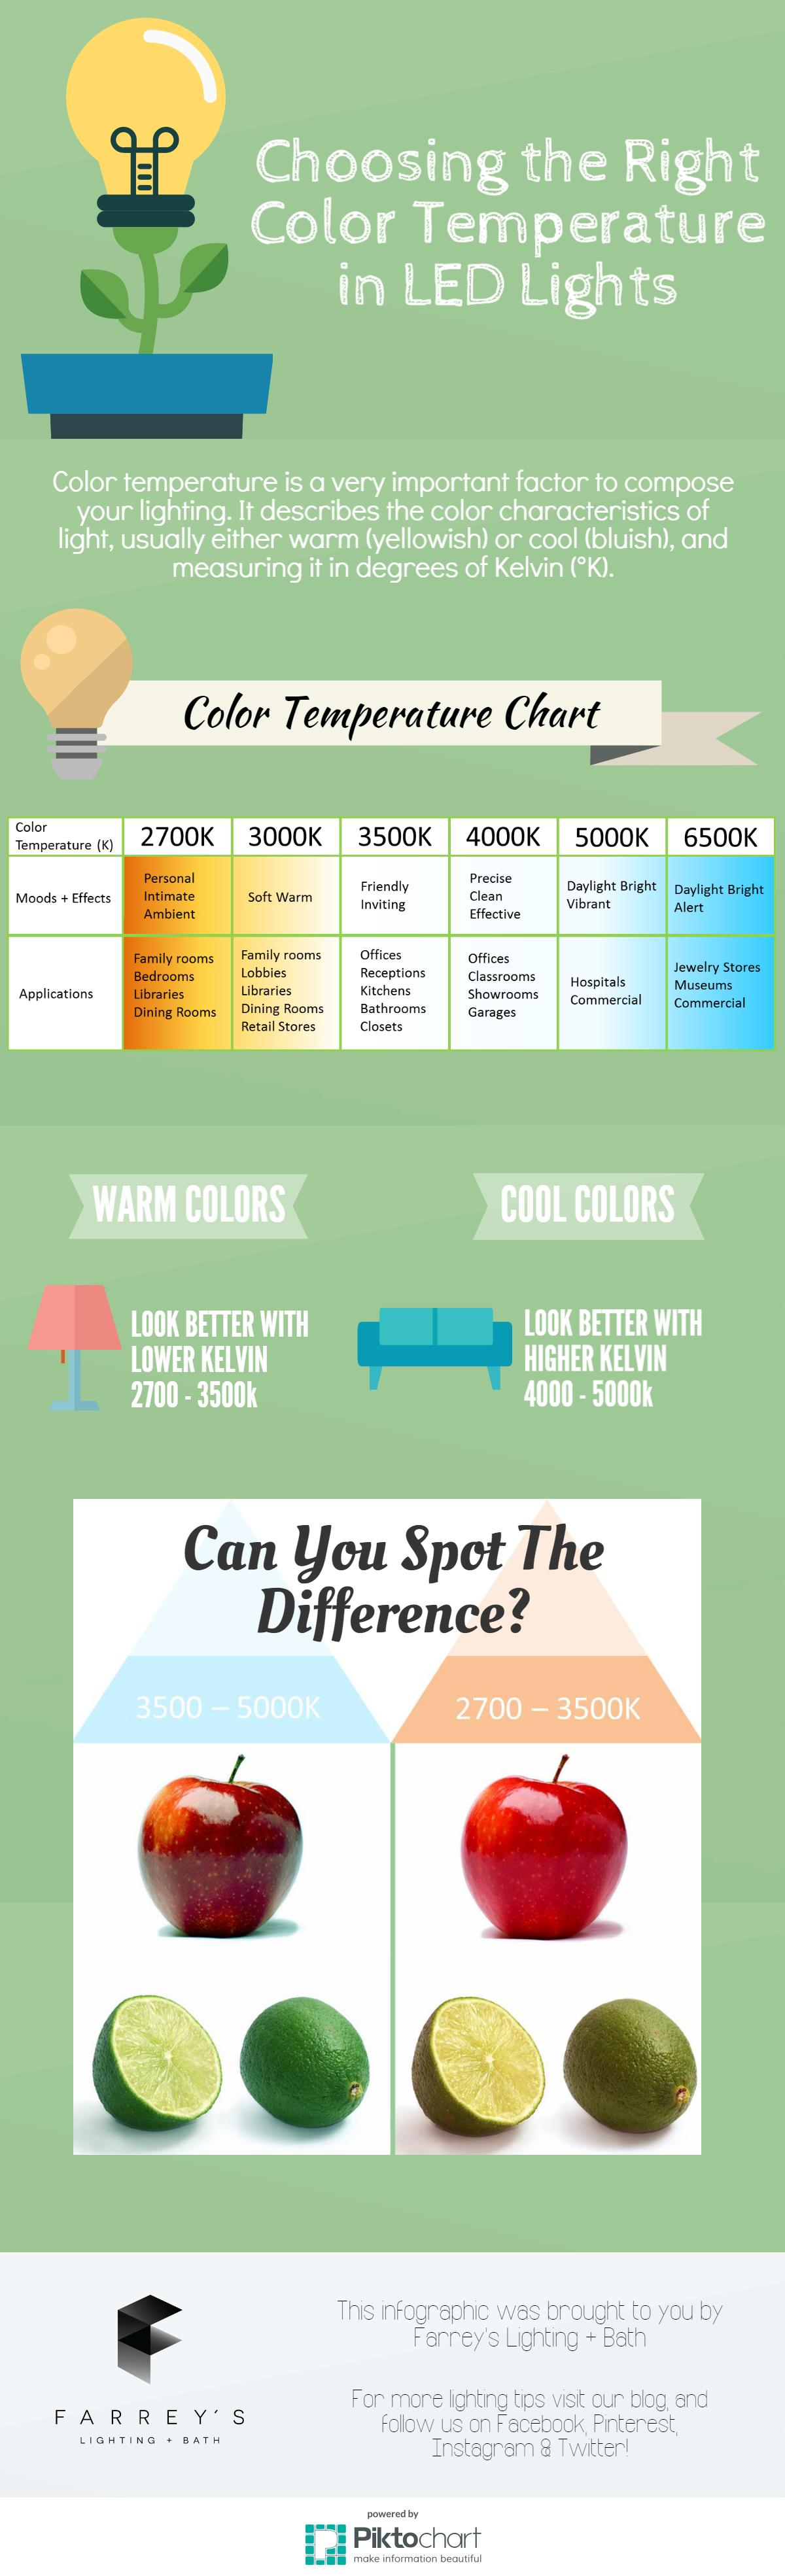 Choosing the right color temperature in led lights farreys led color temperature infographic nvjuhfo Image collections